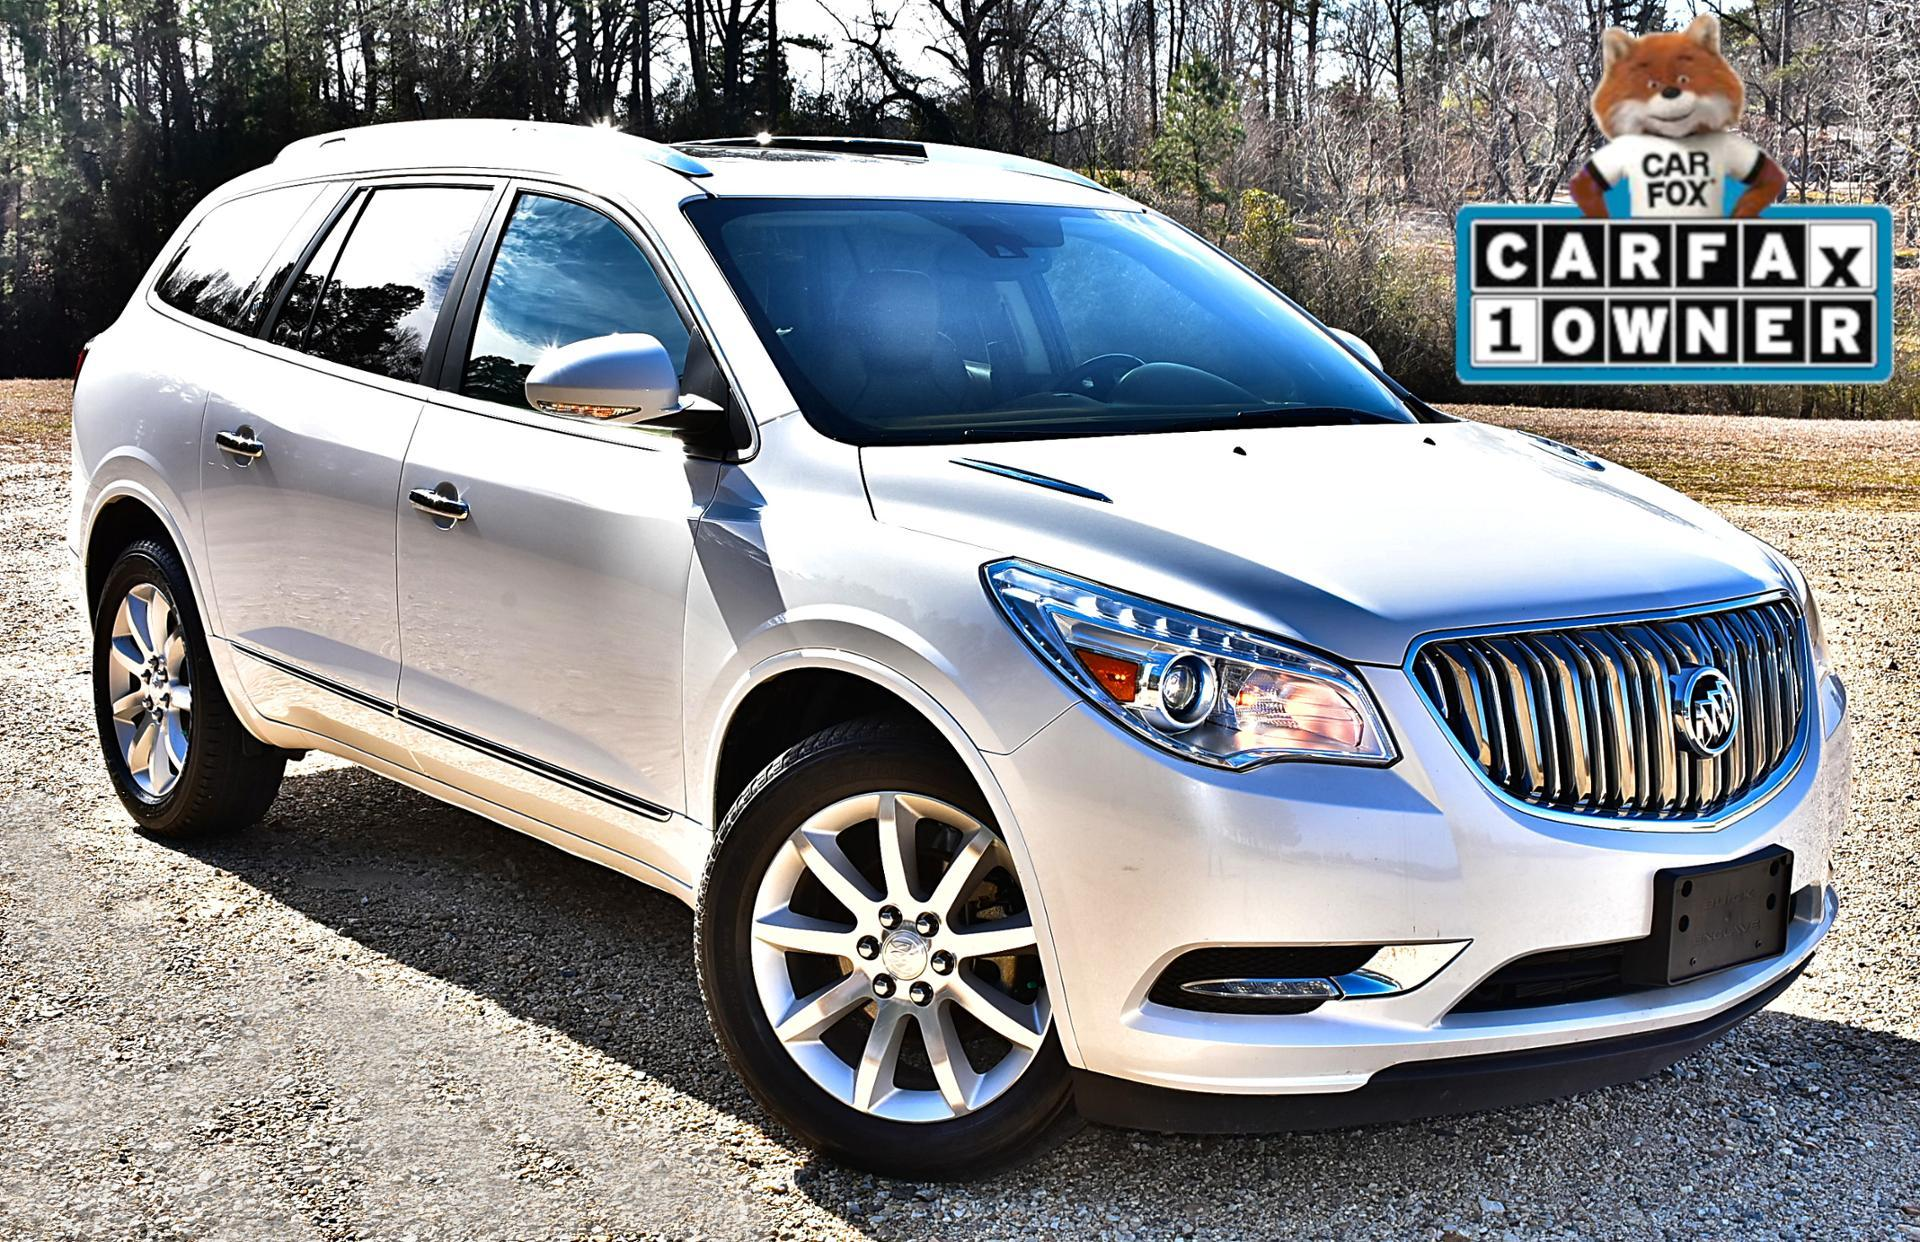 Carfax Vehicle Search Lovely De Queen Pre Owned Vehicles for Sale